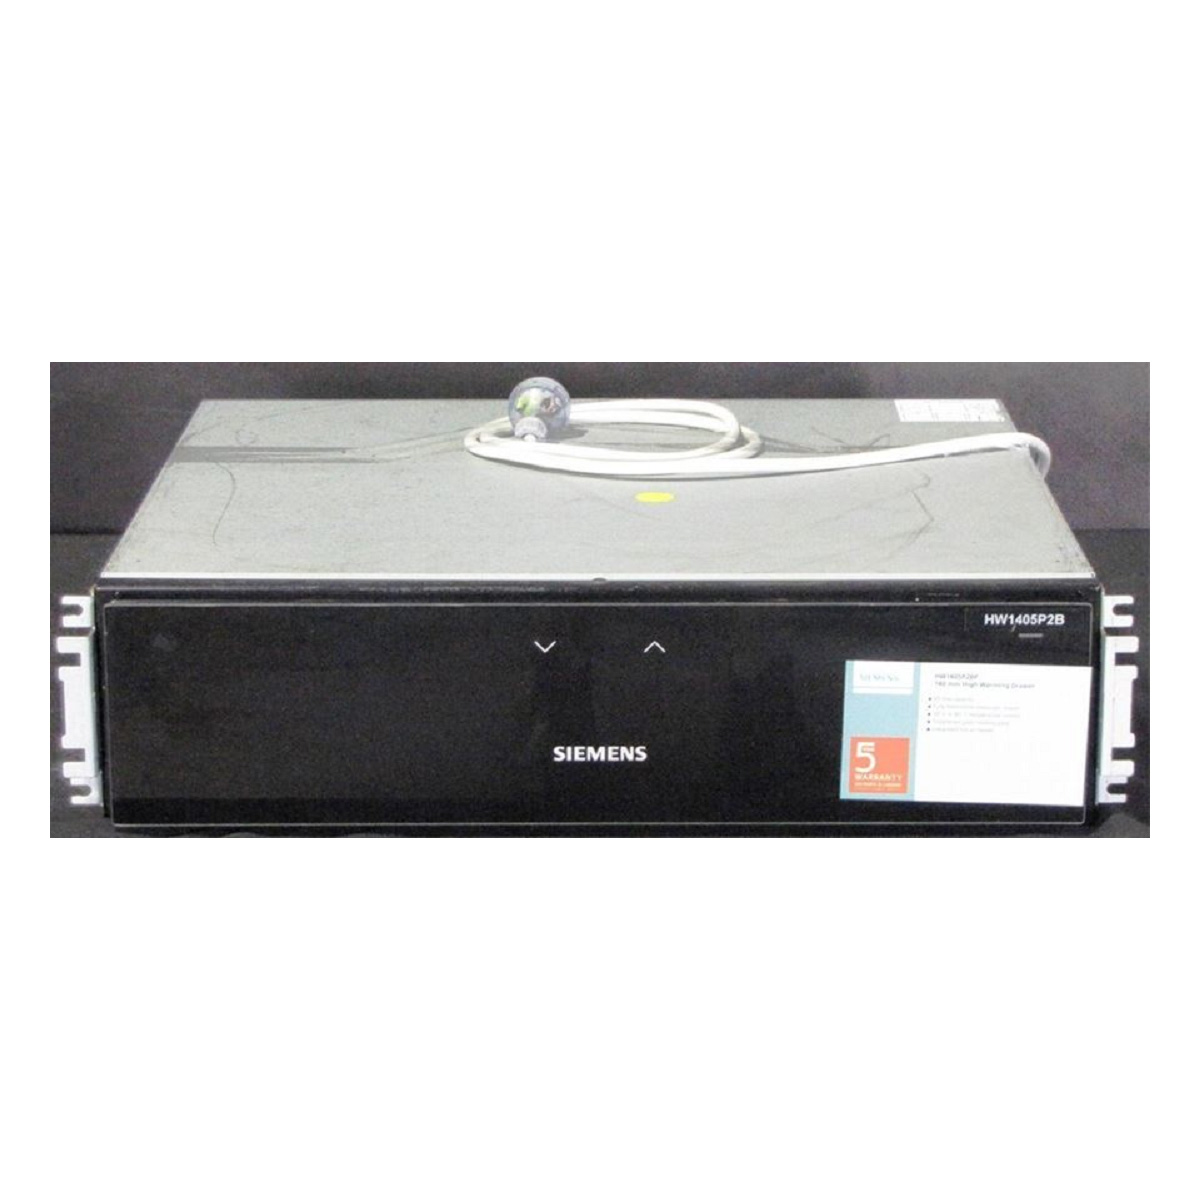 Siemens 60cm Stainless Steel Warming Drawer